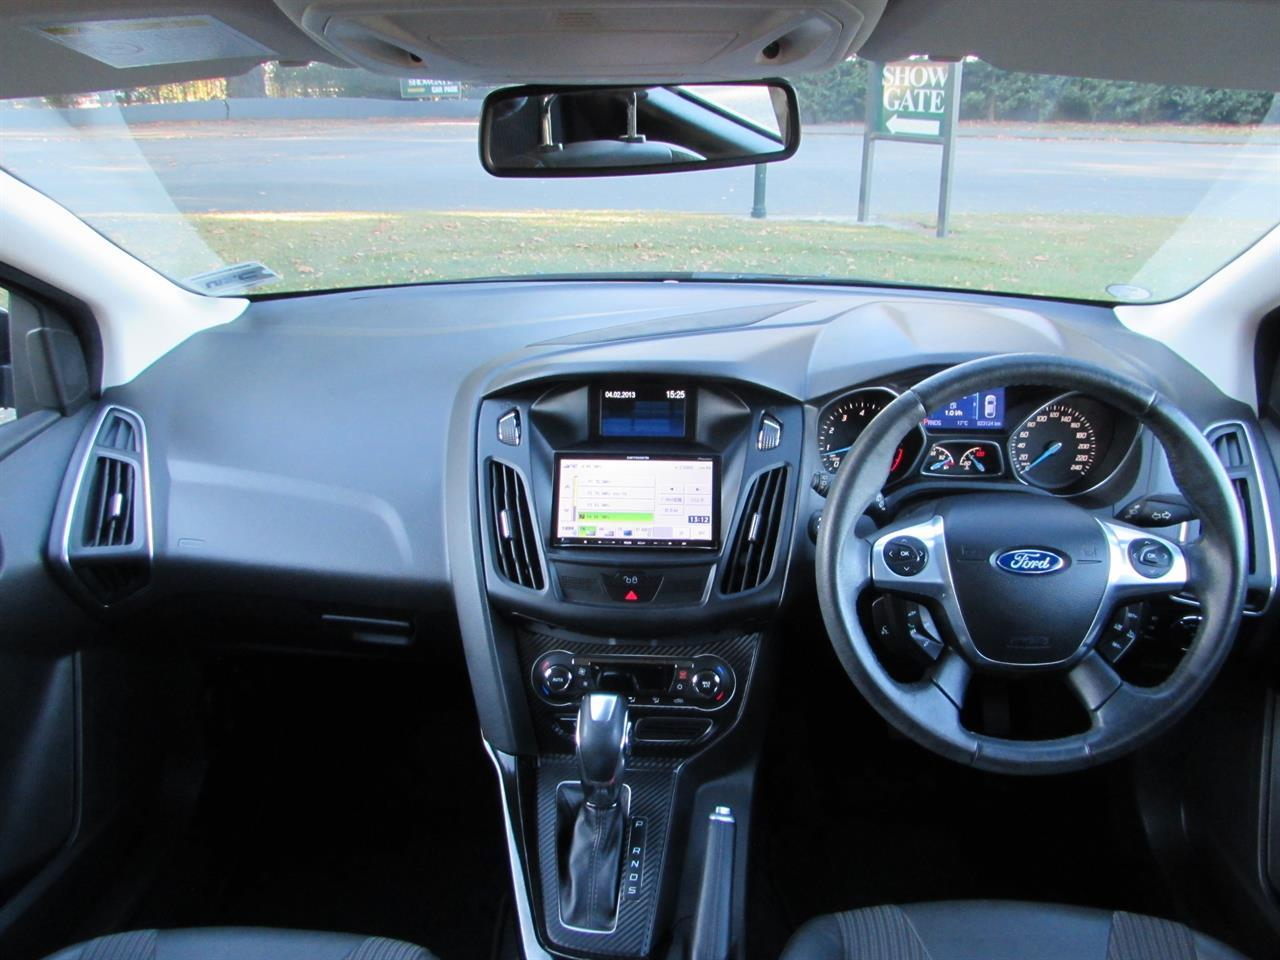 image-11, 2013 Ford Focus at Christchurch